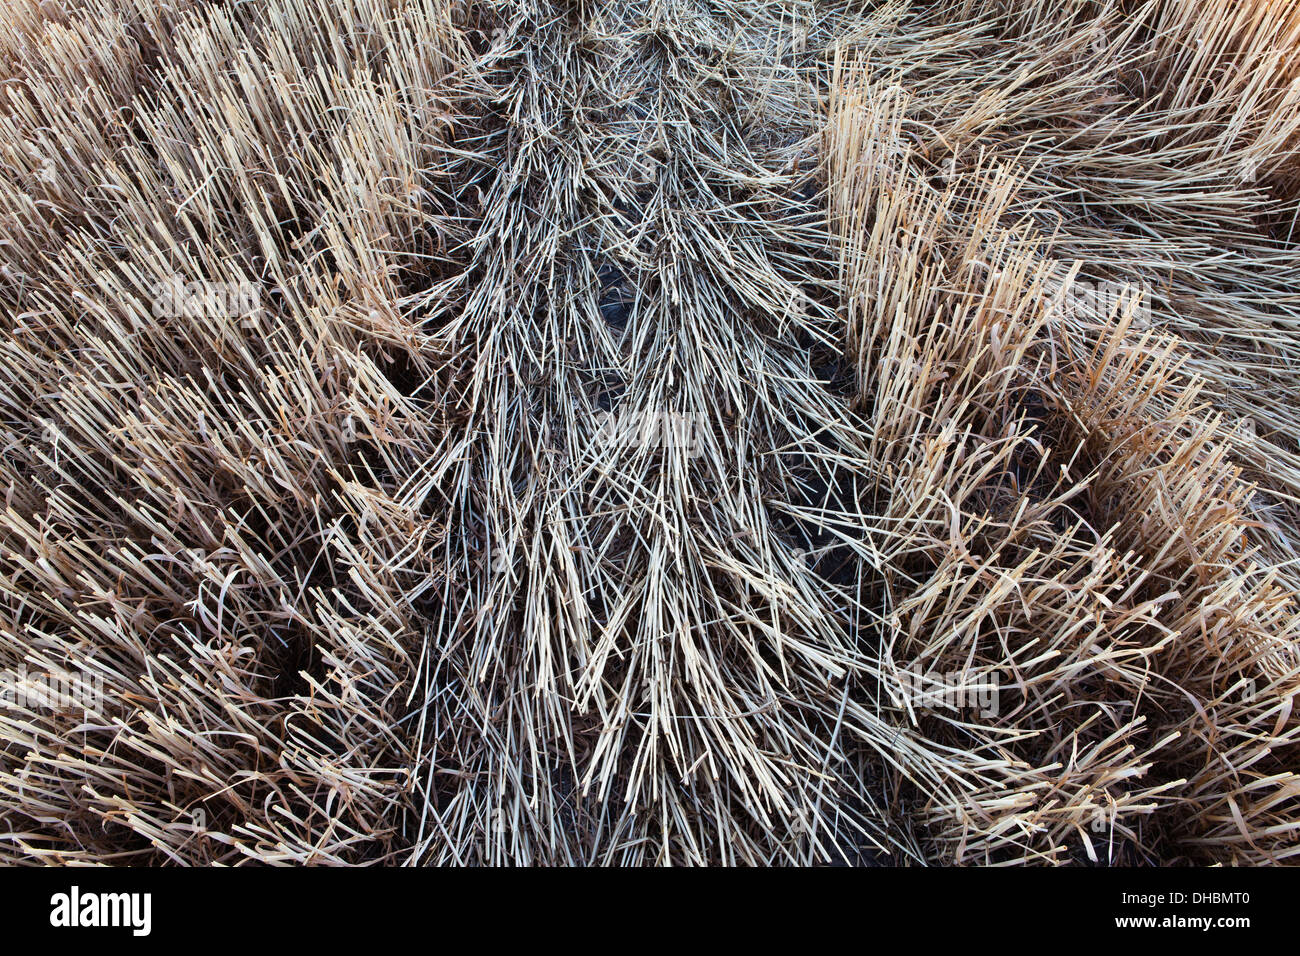 A wheatfield, stubble after the harvesting has been finished. - Stock Image